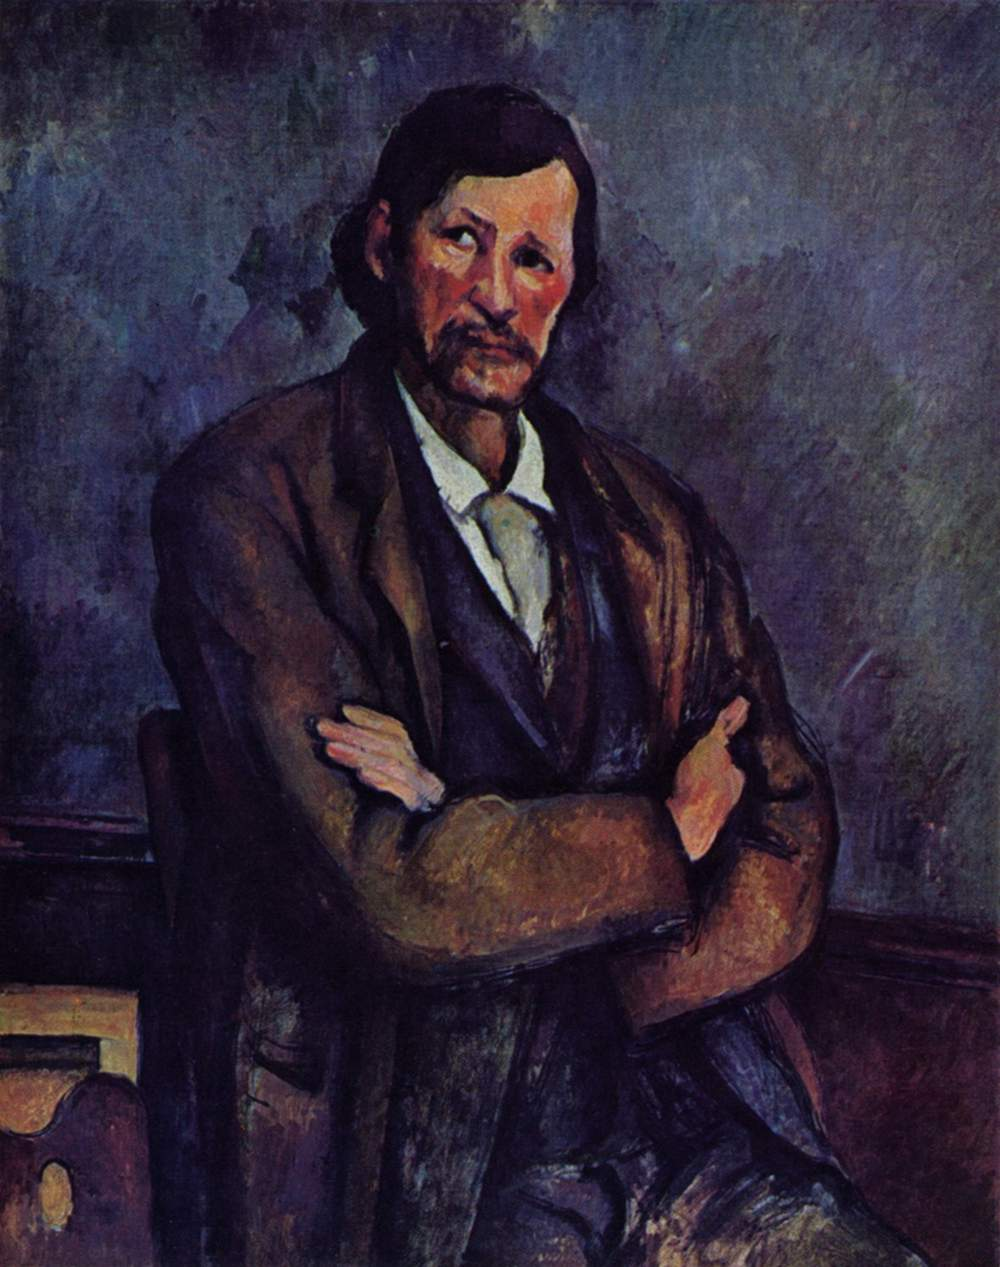 Man with crossed arms 1900